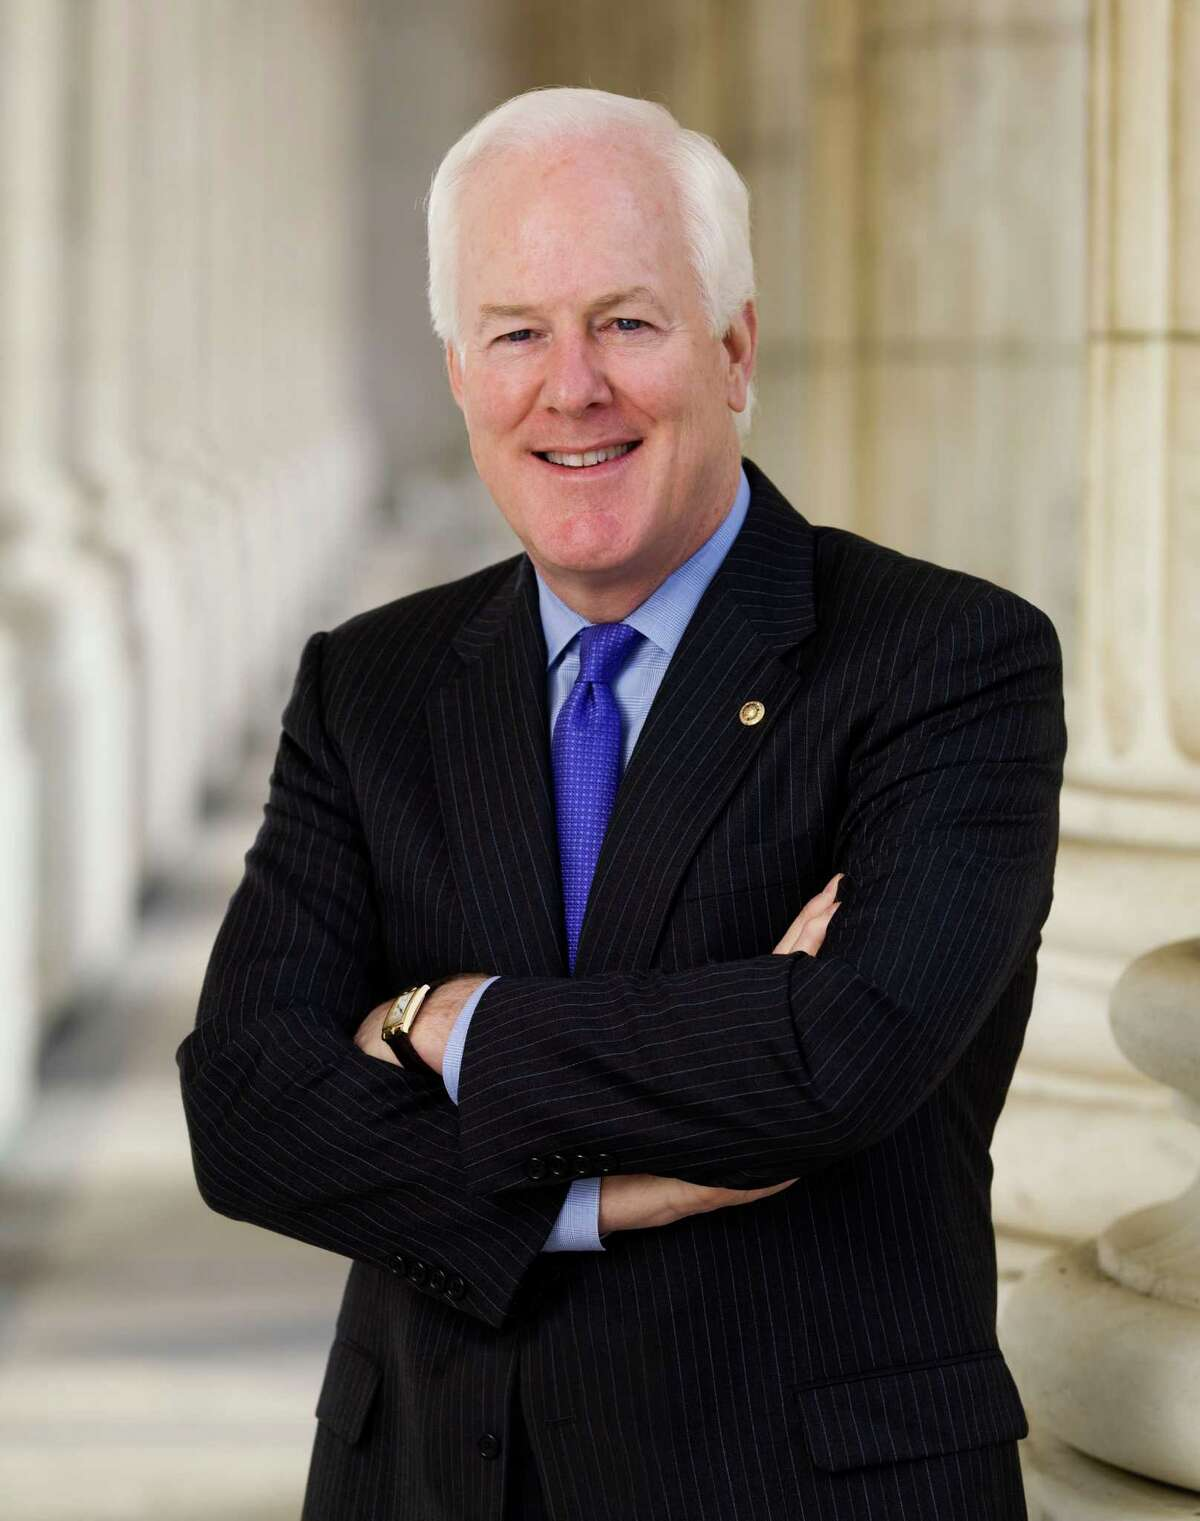 U.S. Sen. John Cornyn will be the guest speaker at Fort Bend Strong.